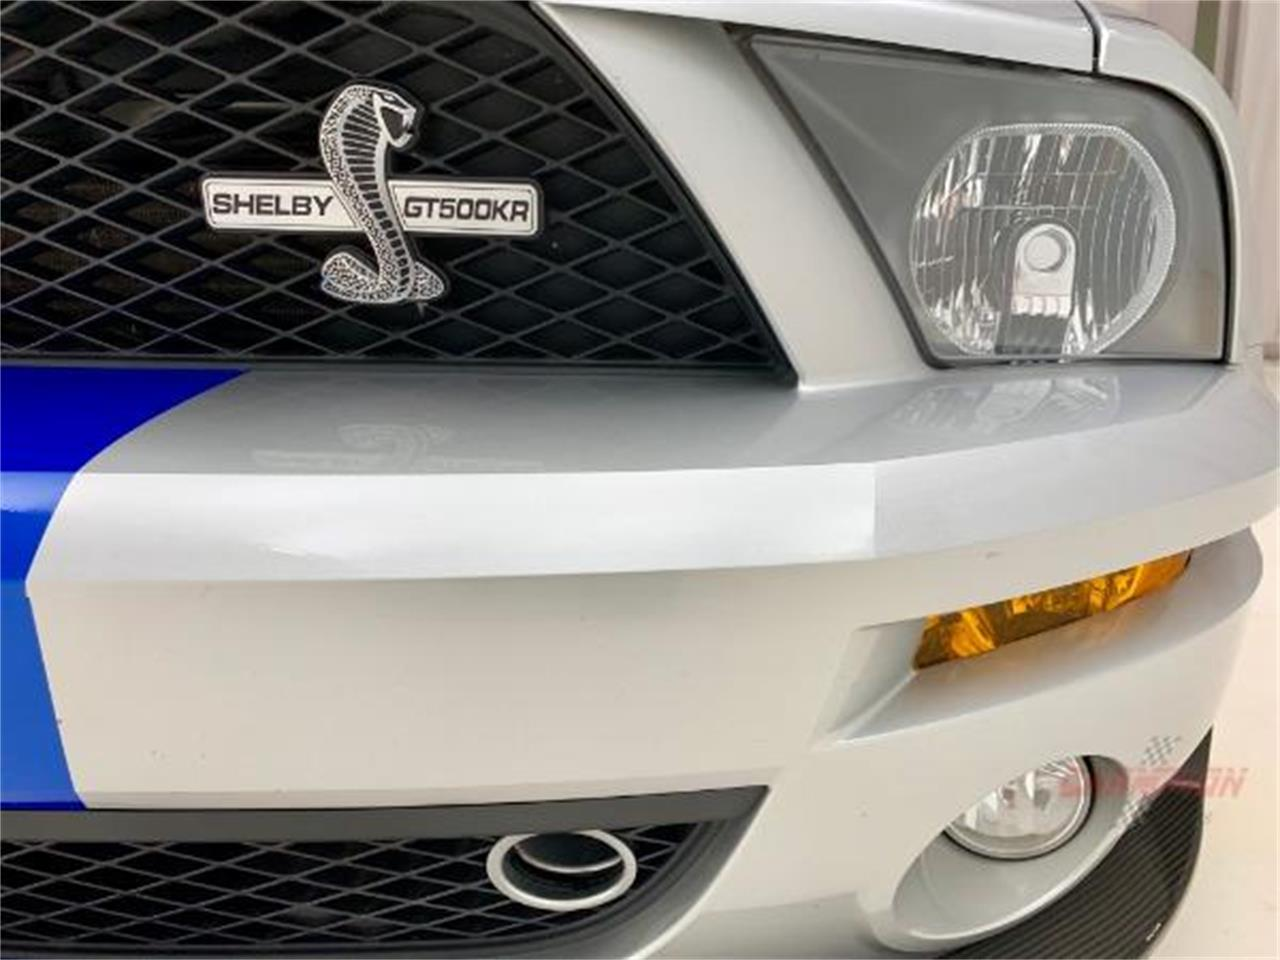 2009 Shelby Mustang for sale in Syosset, NY – photo 49